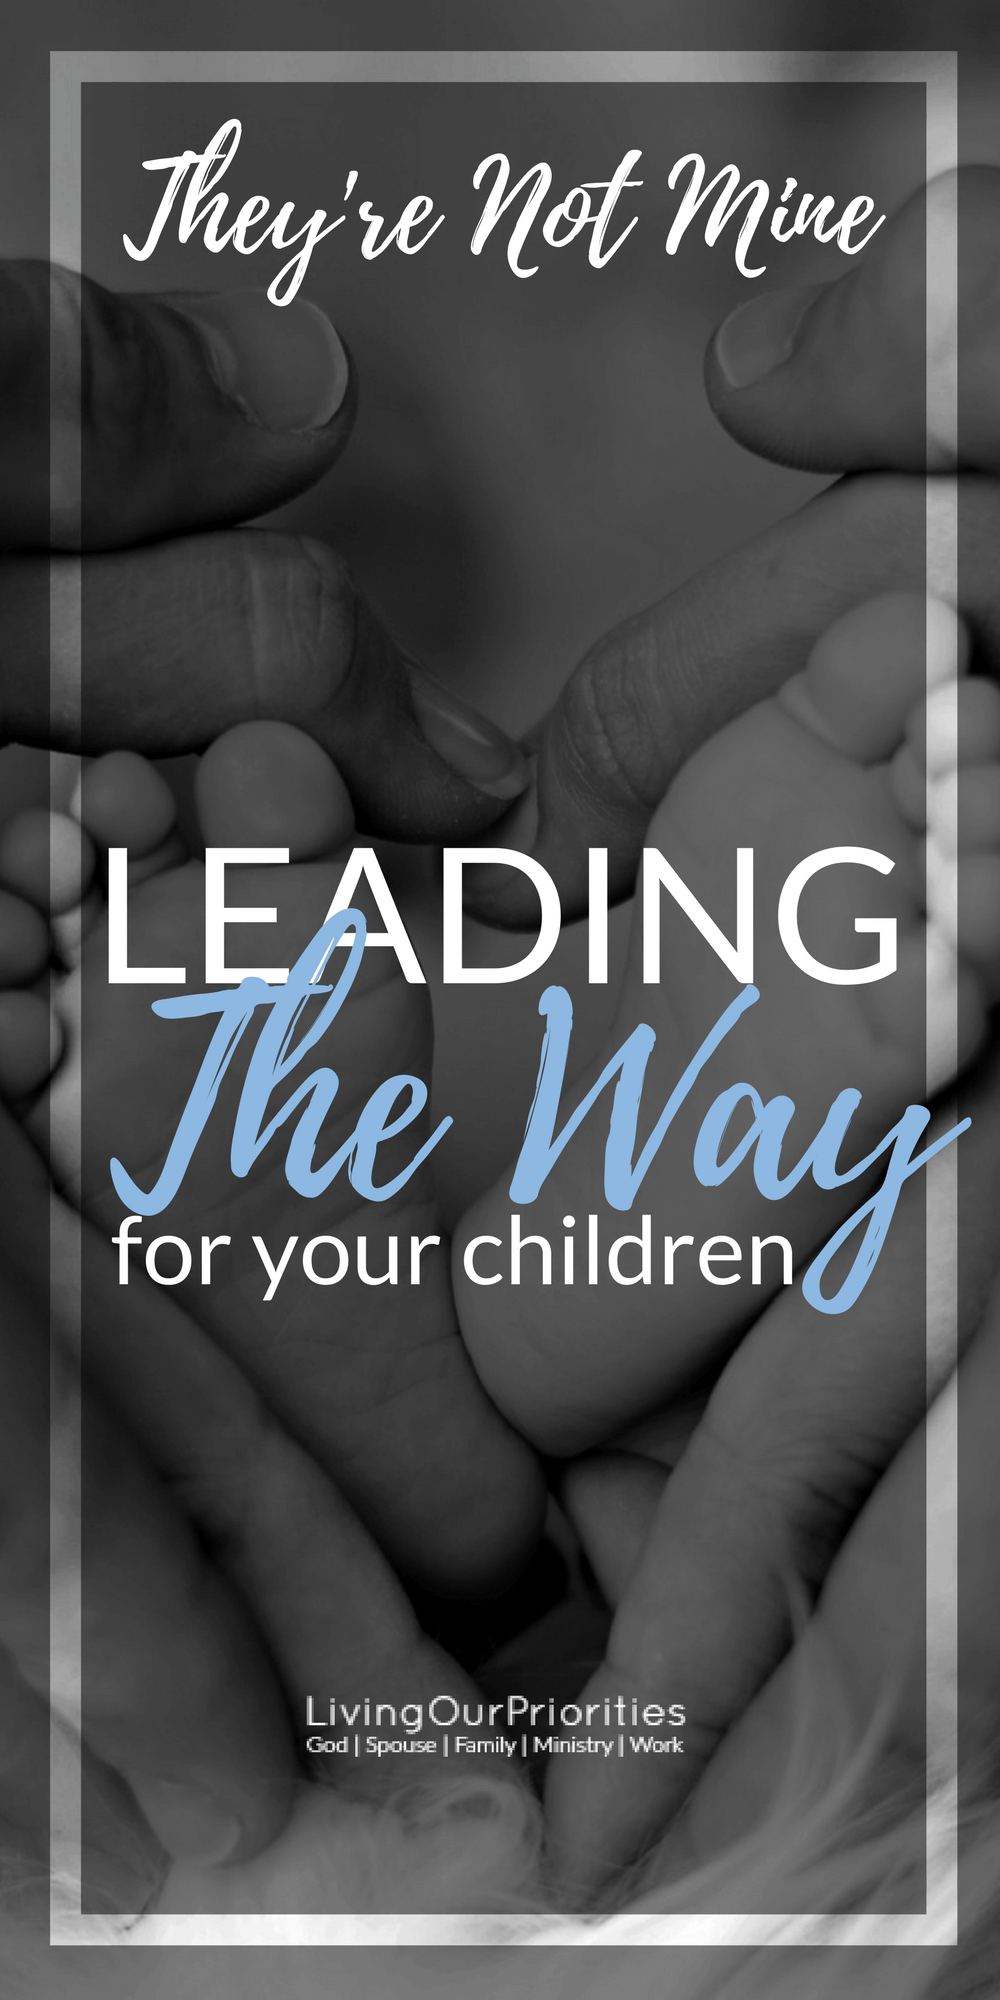 Parenting takes on a whole new meaning when we internalized our children belong to God. And since they belong to God we have the responsibility to raise them in The Way they should go. Read more to learn 4 ways to lead The Way in your home with your children.